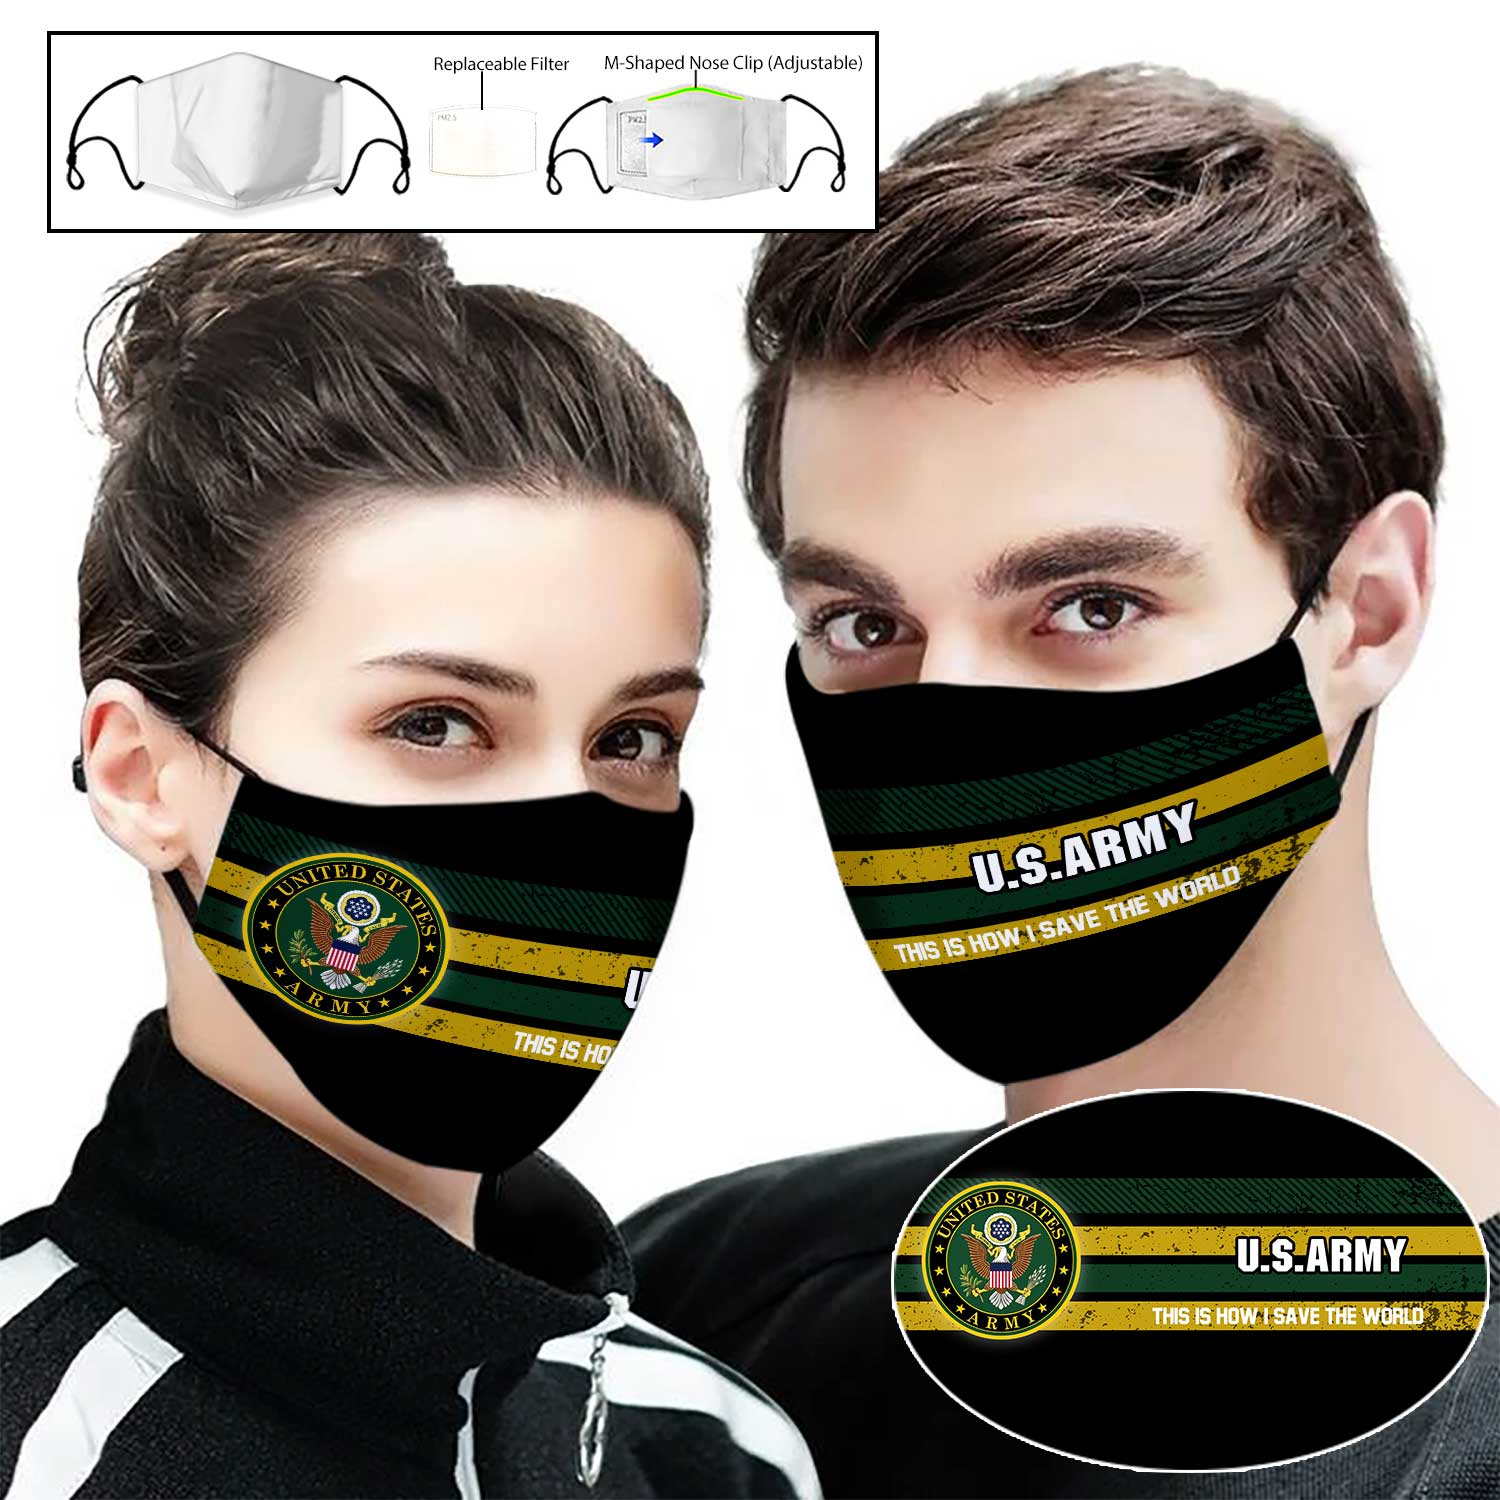 US army this is how i save the world full printing face mask 1